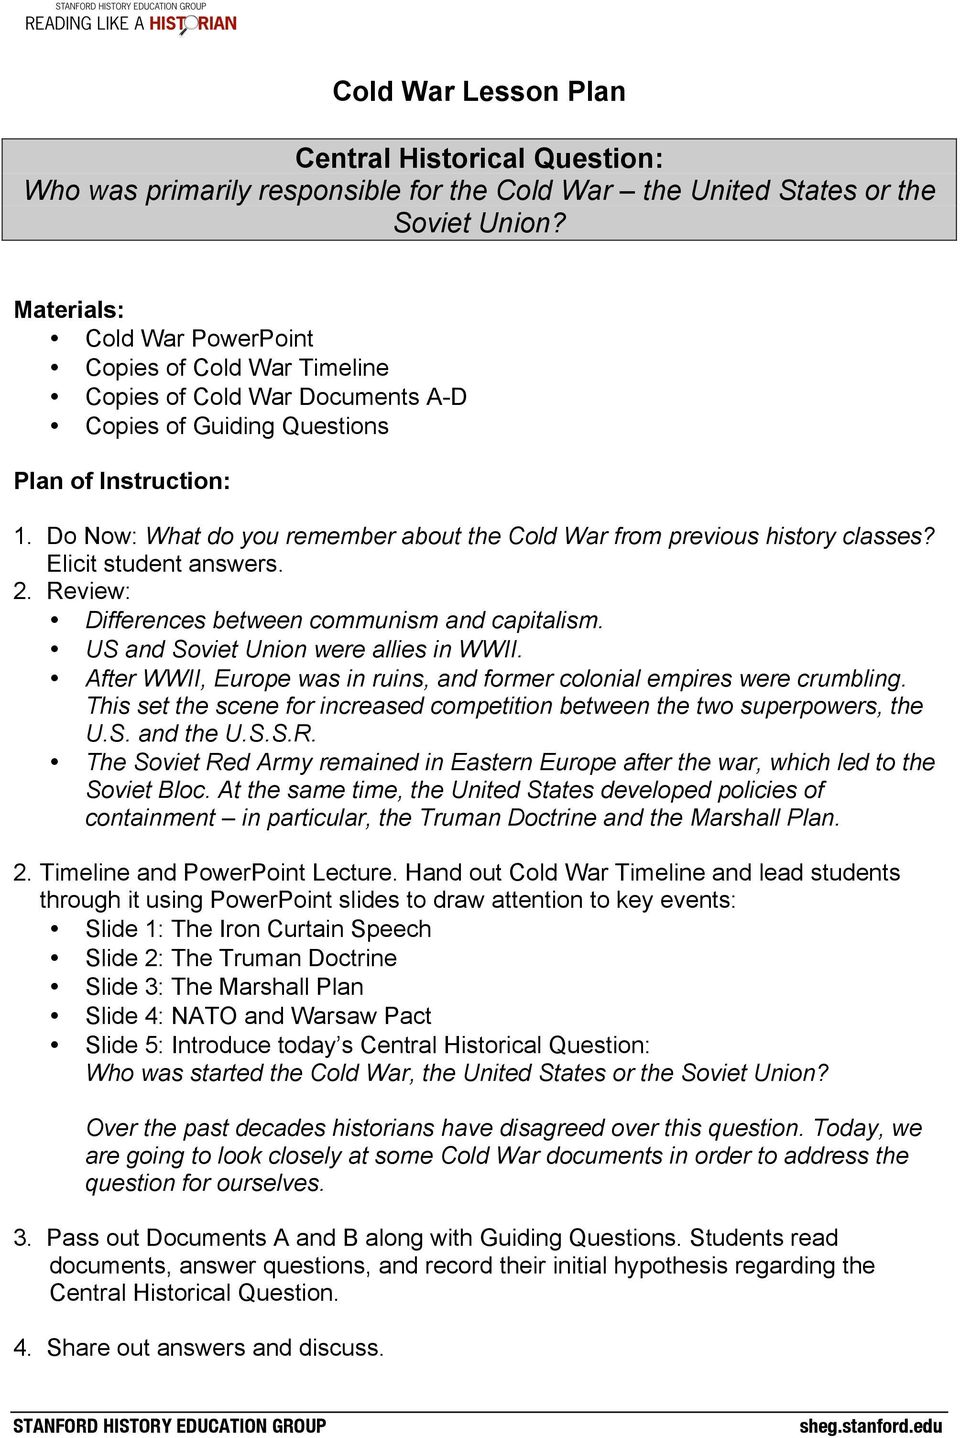 Cold war lesson plan central historical question who was primarily do now what do you remember about the cold war from previous history classes ibookread ePUb